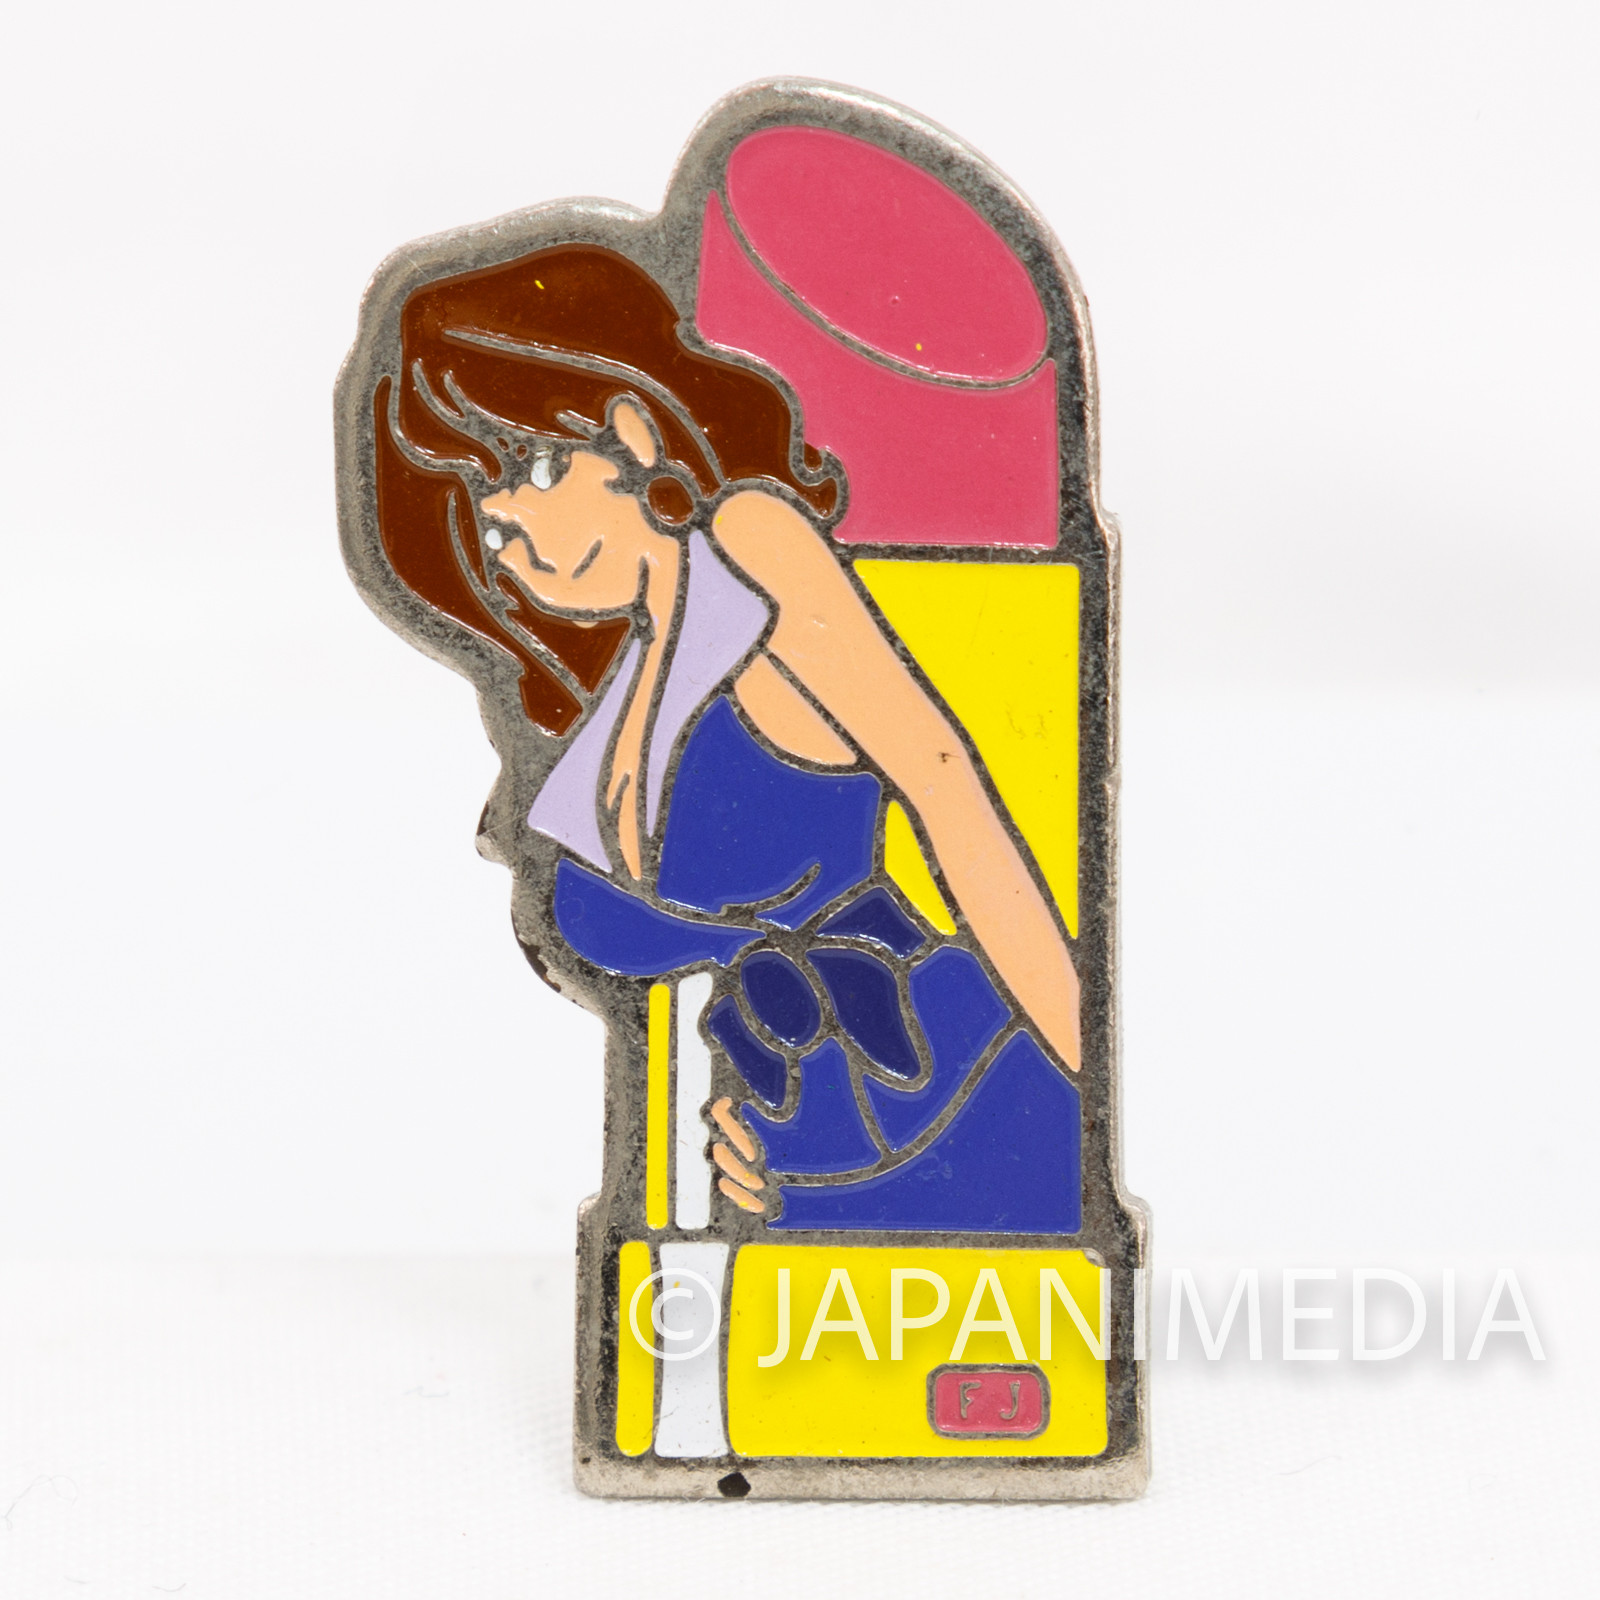 Lupin the Third (3rd) Fujiko Mine Metal Pins JAPAN ANIME 3